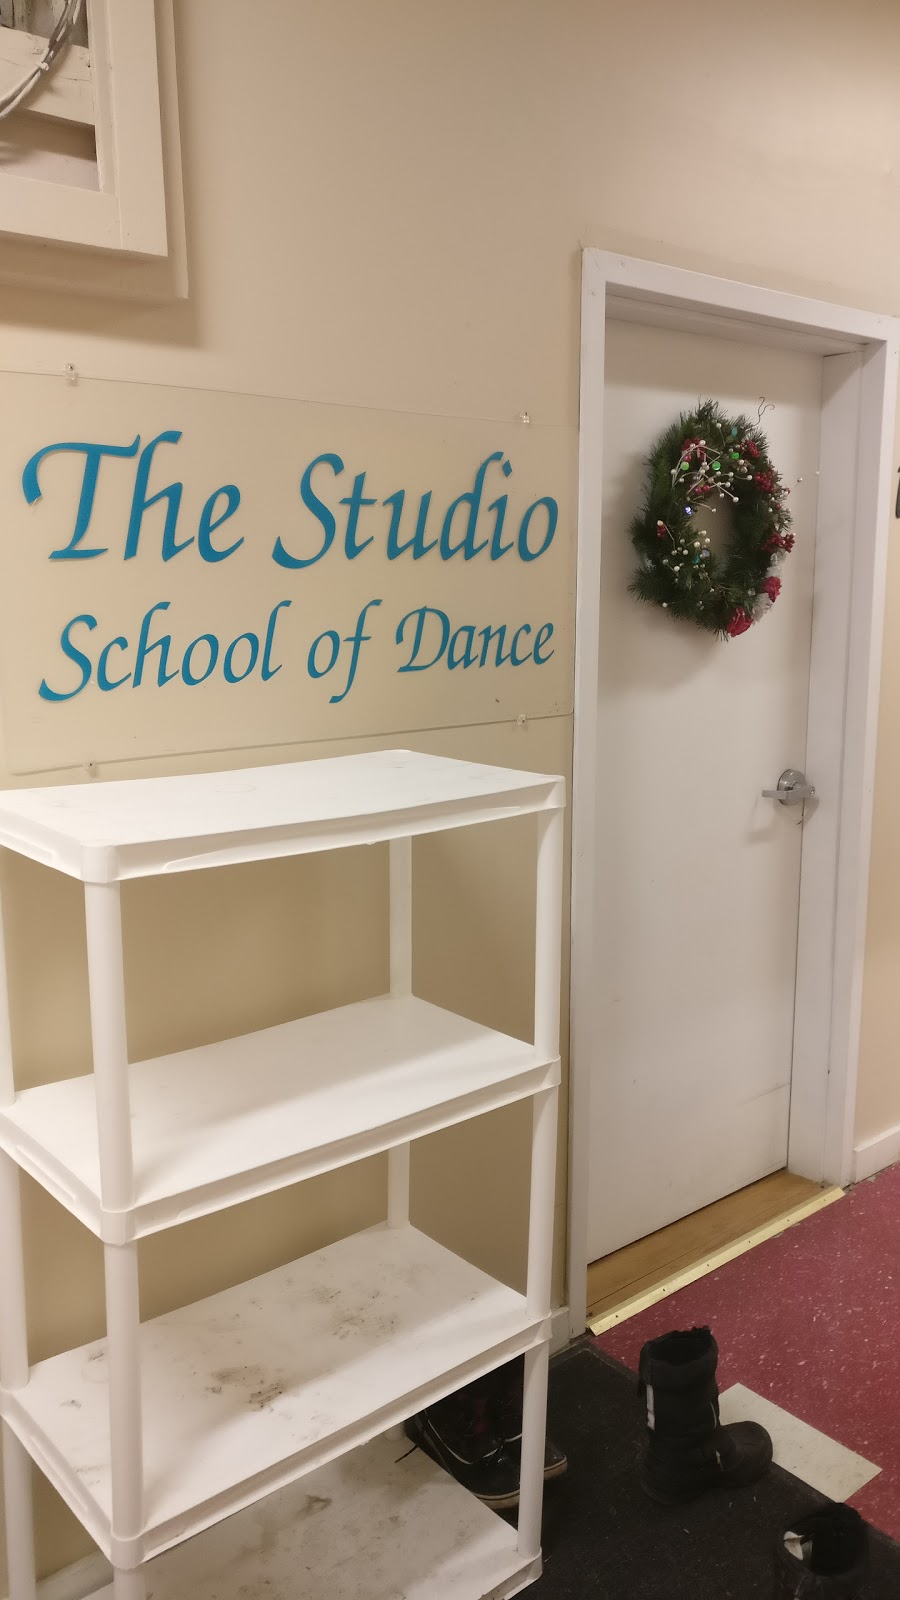 The Studio School of Dance | point of interest | 380 Flora St, Carleton Place, ON K7C 3L7, Canada | 6132532533 OR +1 613-253-2533